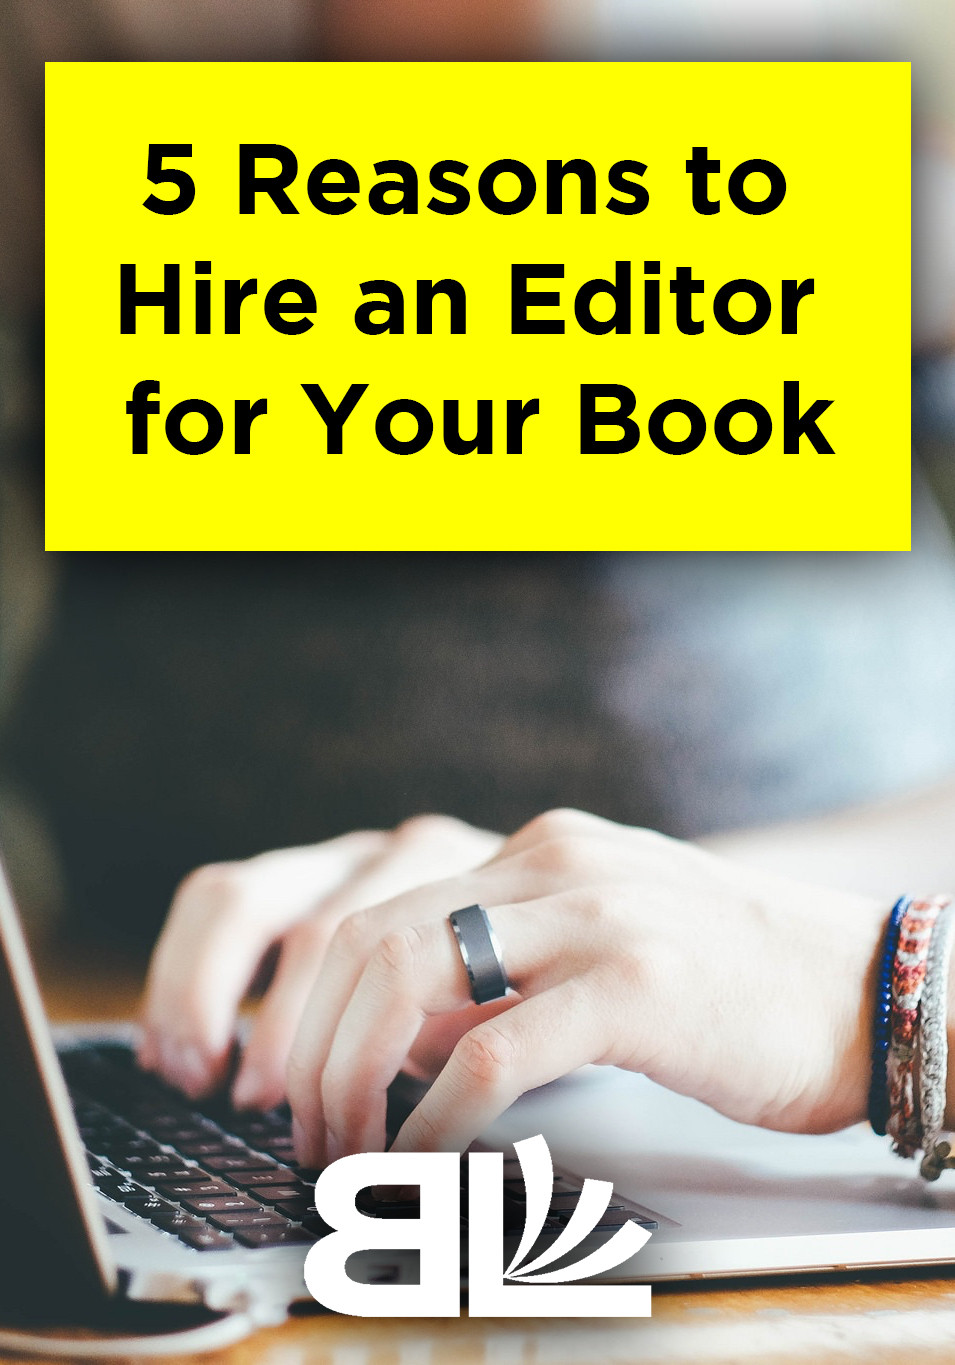 freelance book editor, affordable book editing services, hire an editor for book